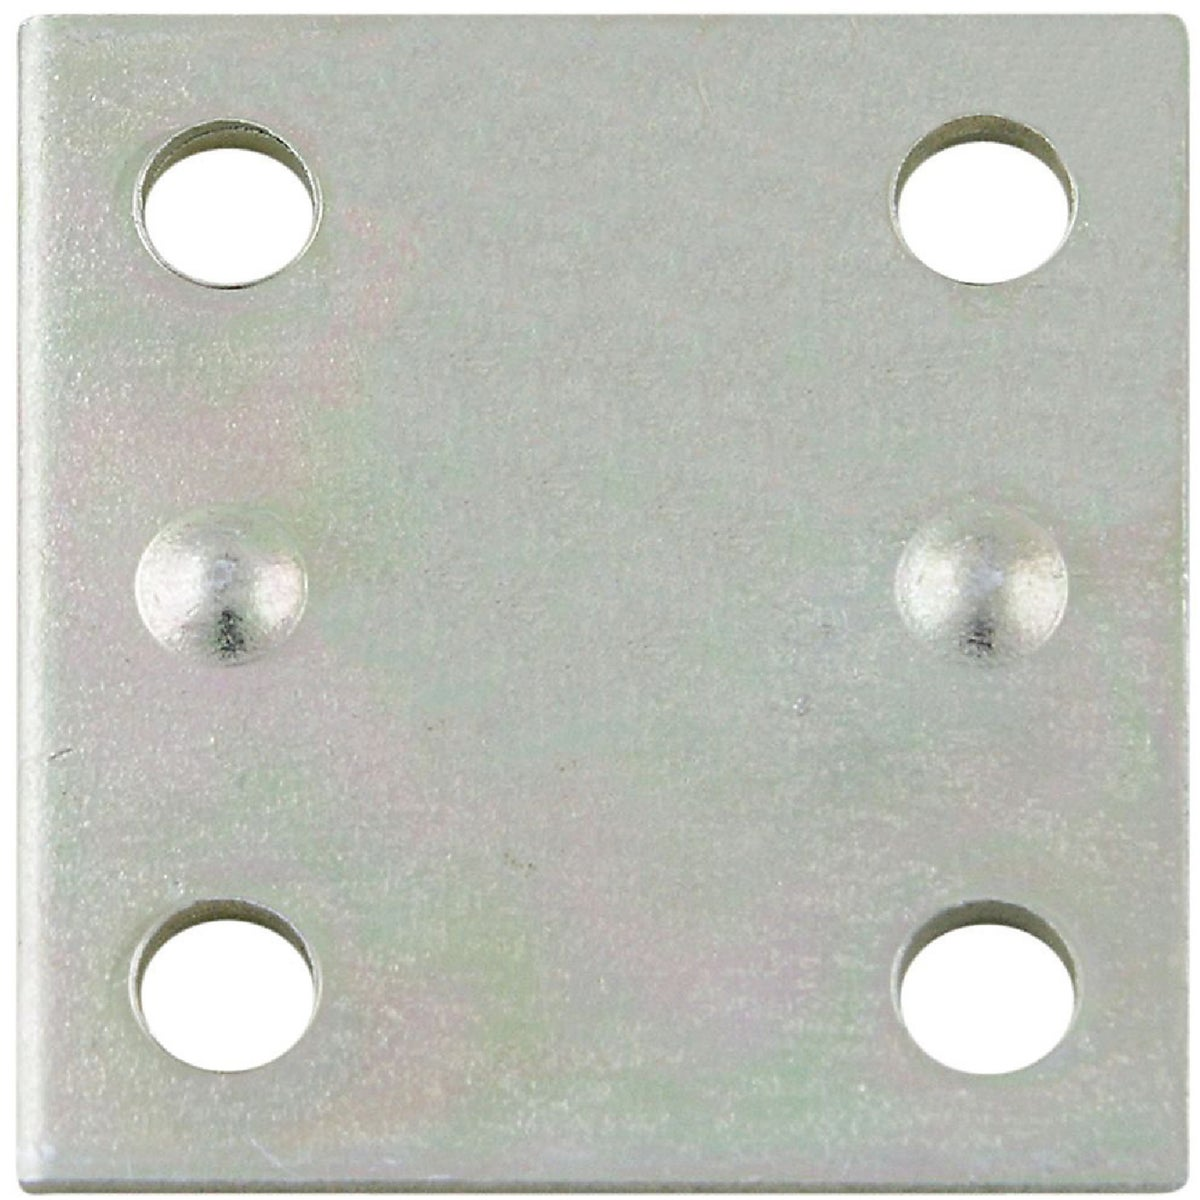 1-1/2X1-3/8 MENDNG PLATE - N220087 by National Mfg Co